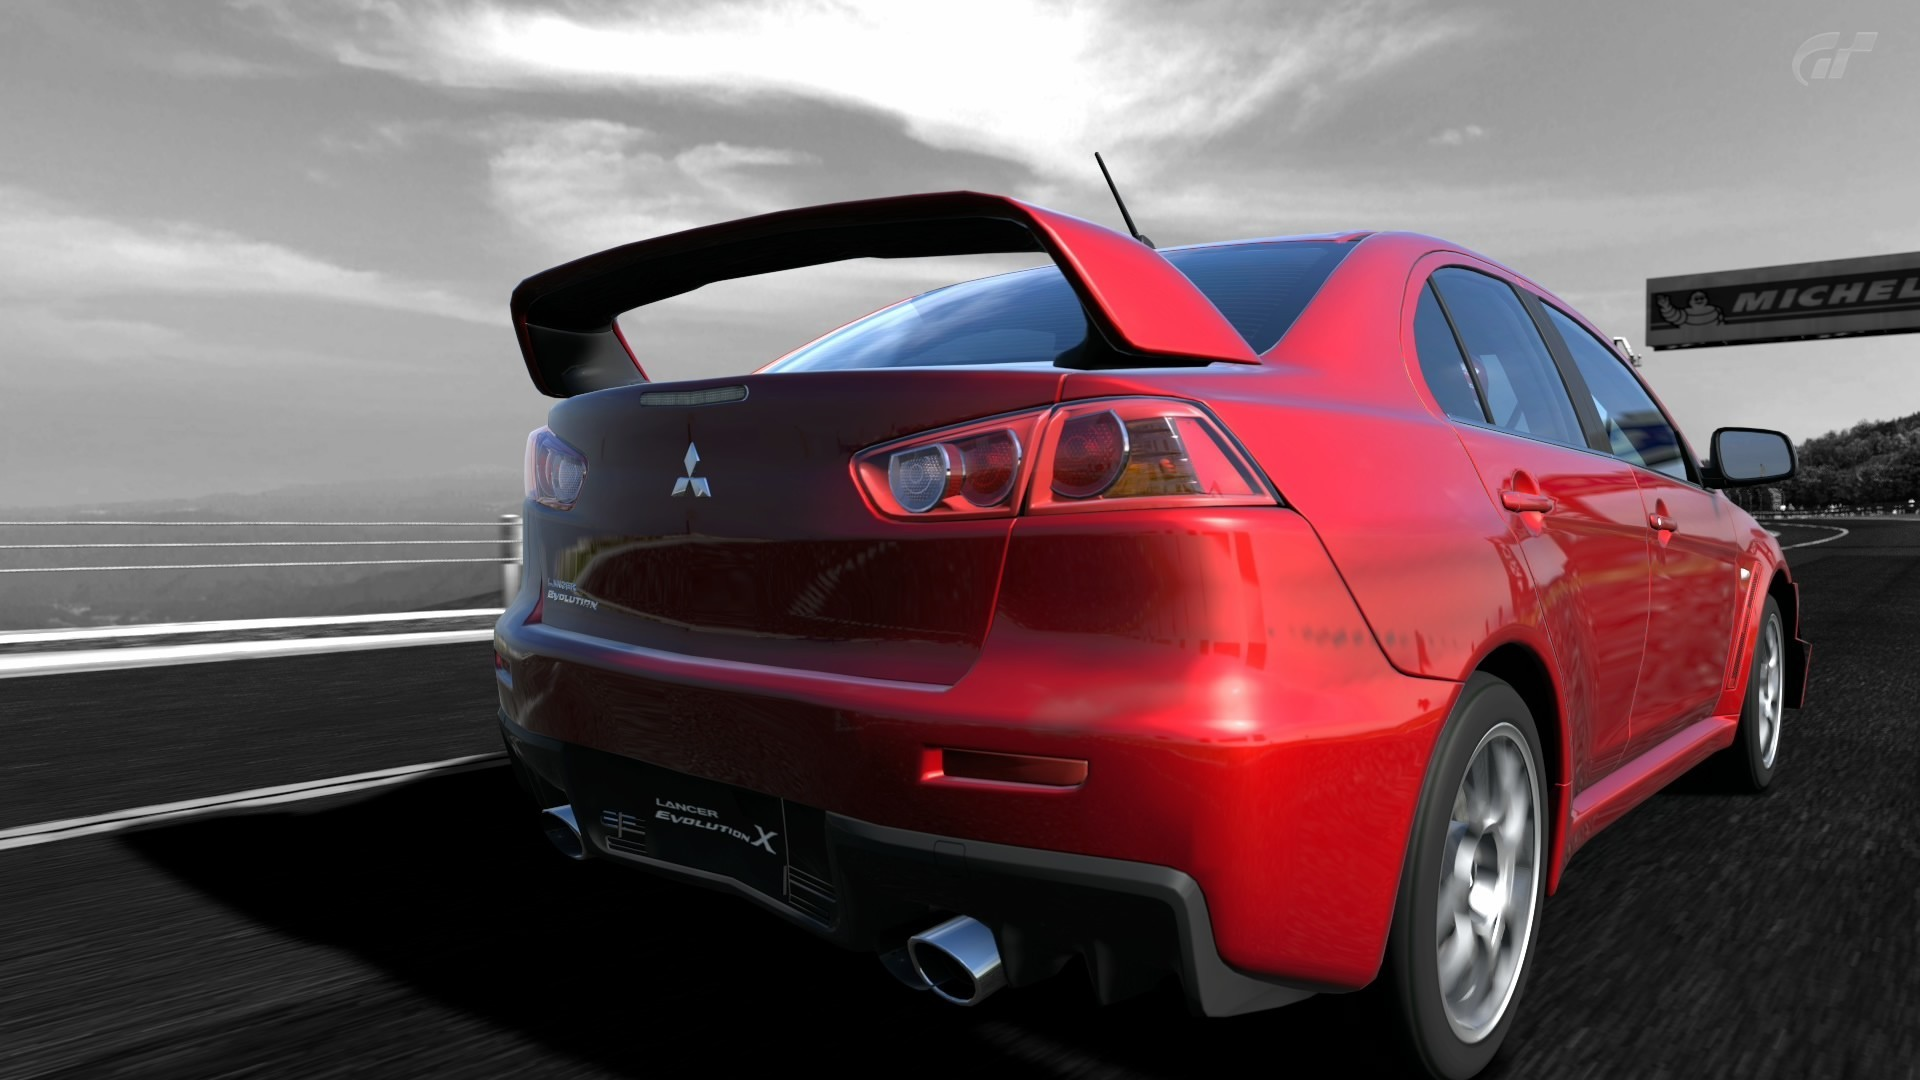 1920x1080  mitsubishi lancer mitsubishi lancer evo x wallpaper and  background JPG 236 kB